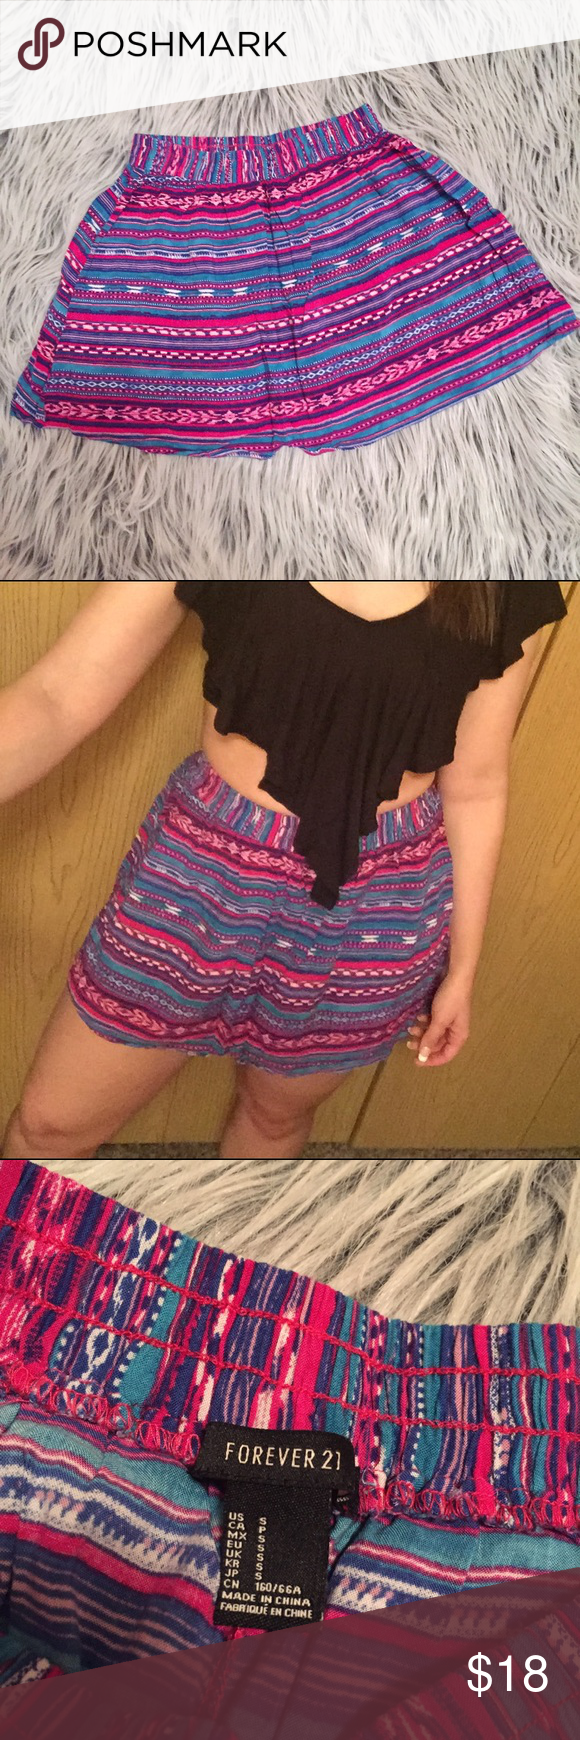 Aztec pattern skirt Pink and turquoise tribal pattern skirt. Flowy and fun and great with crop tops. Excellent condition! Forever 21 Skirts Circle & Skater